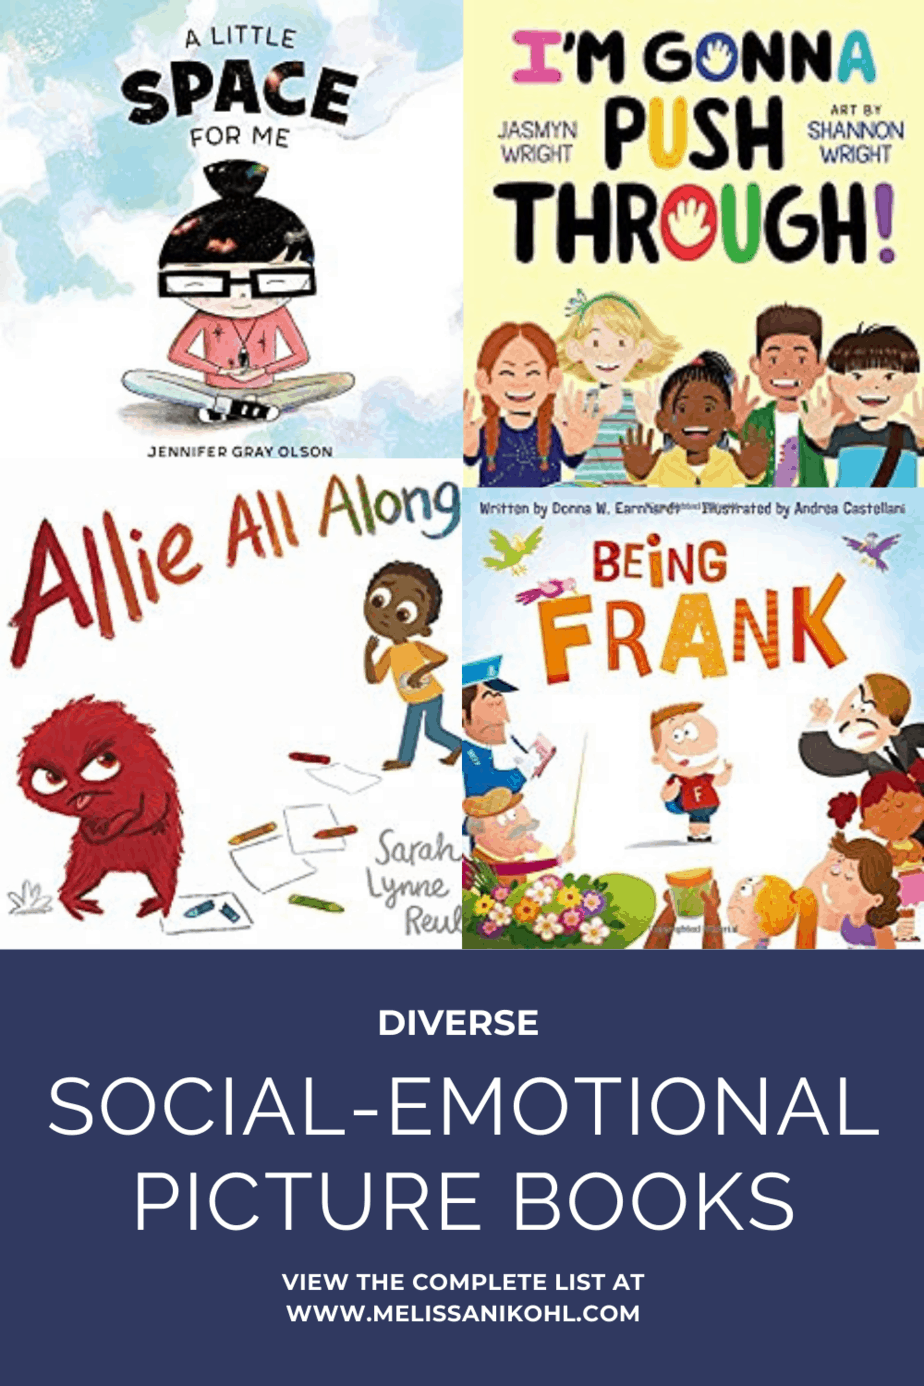 Check out these diverse social emotional picture books.